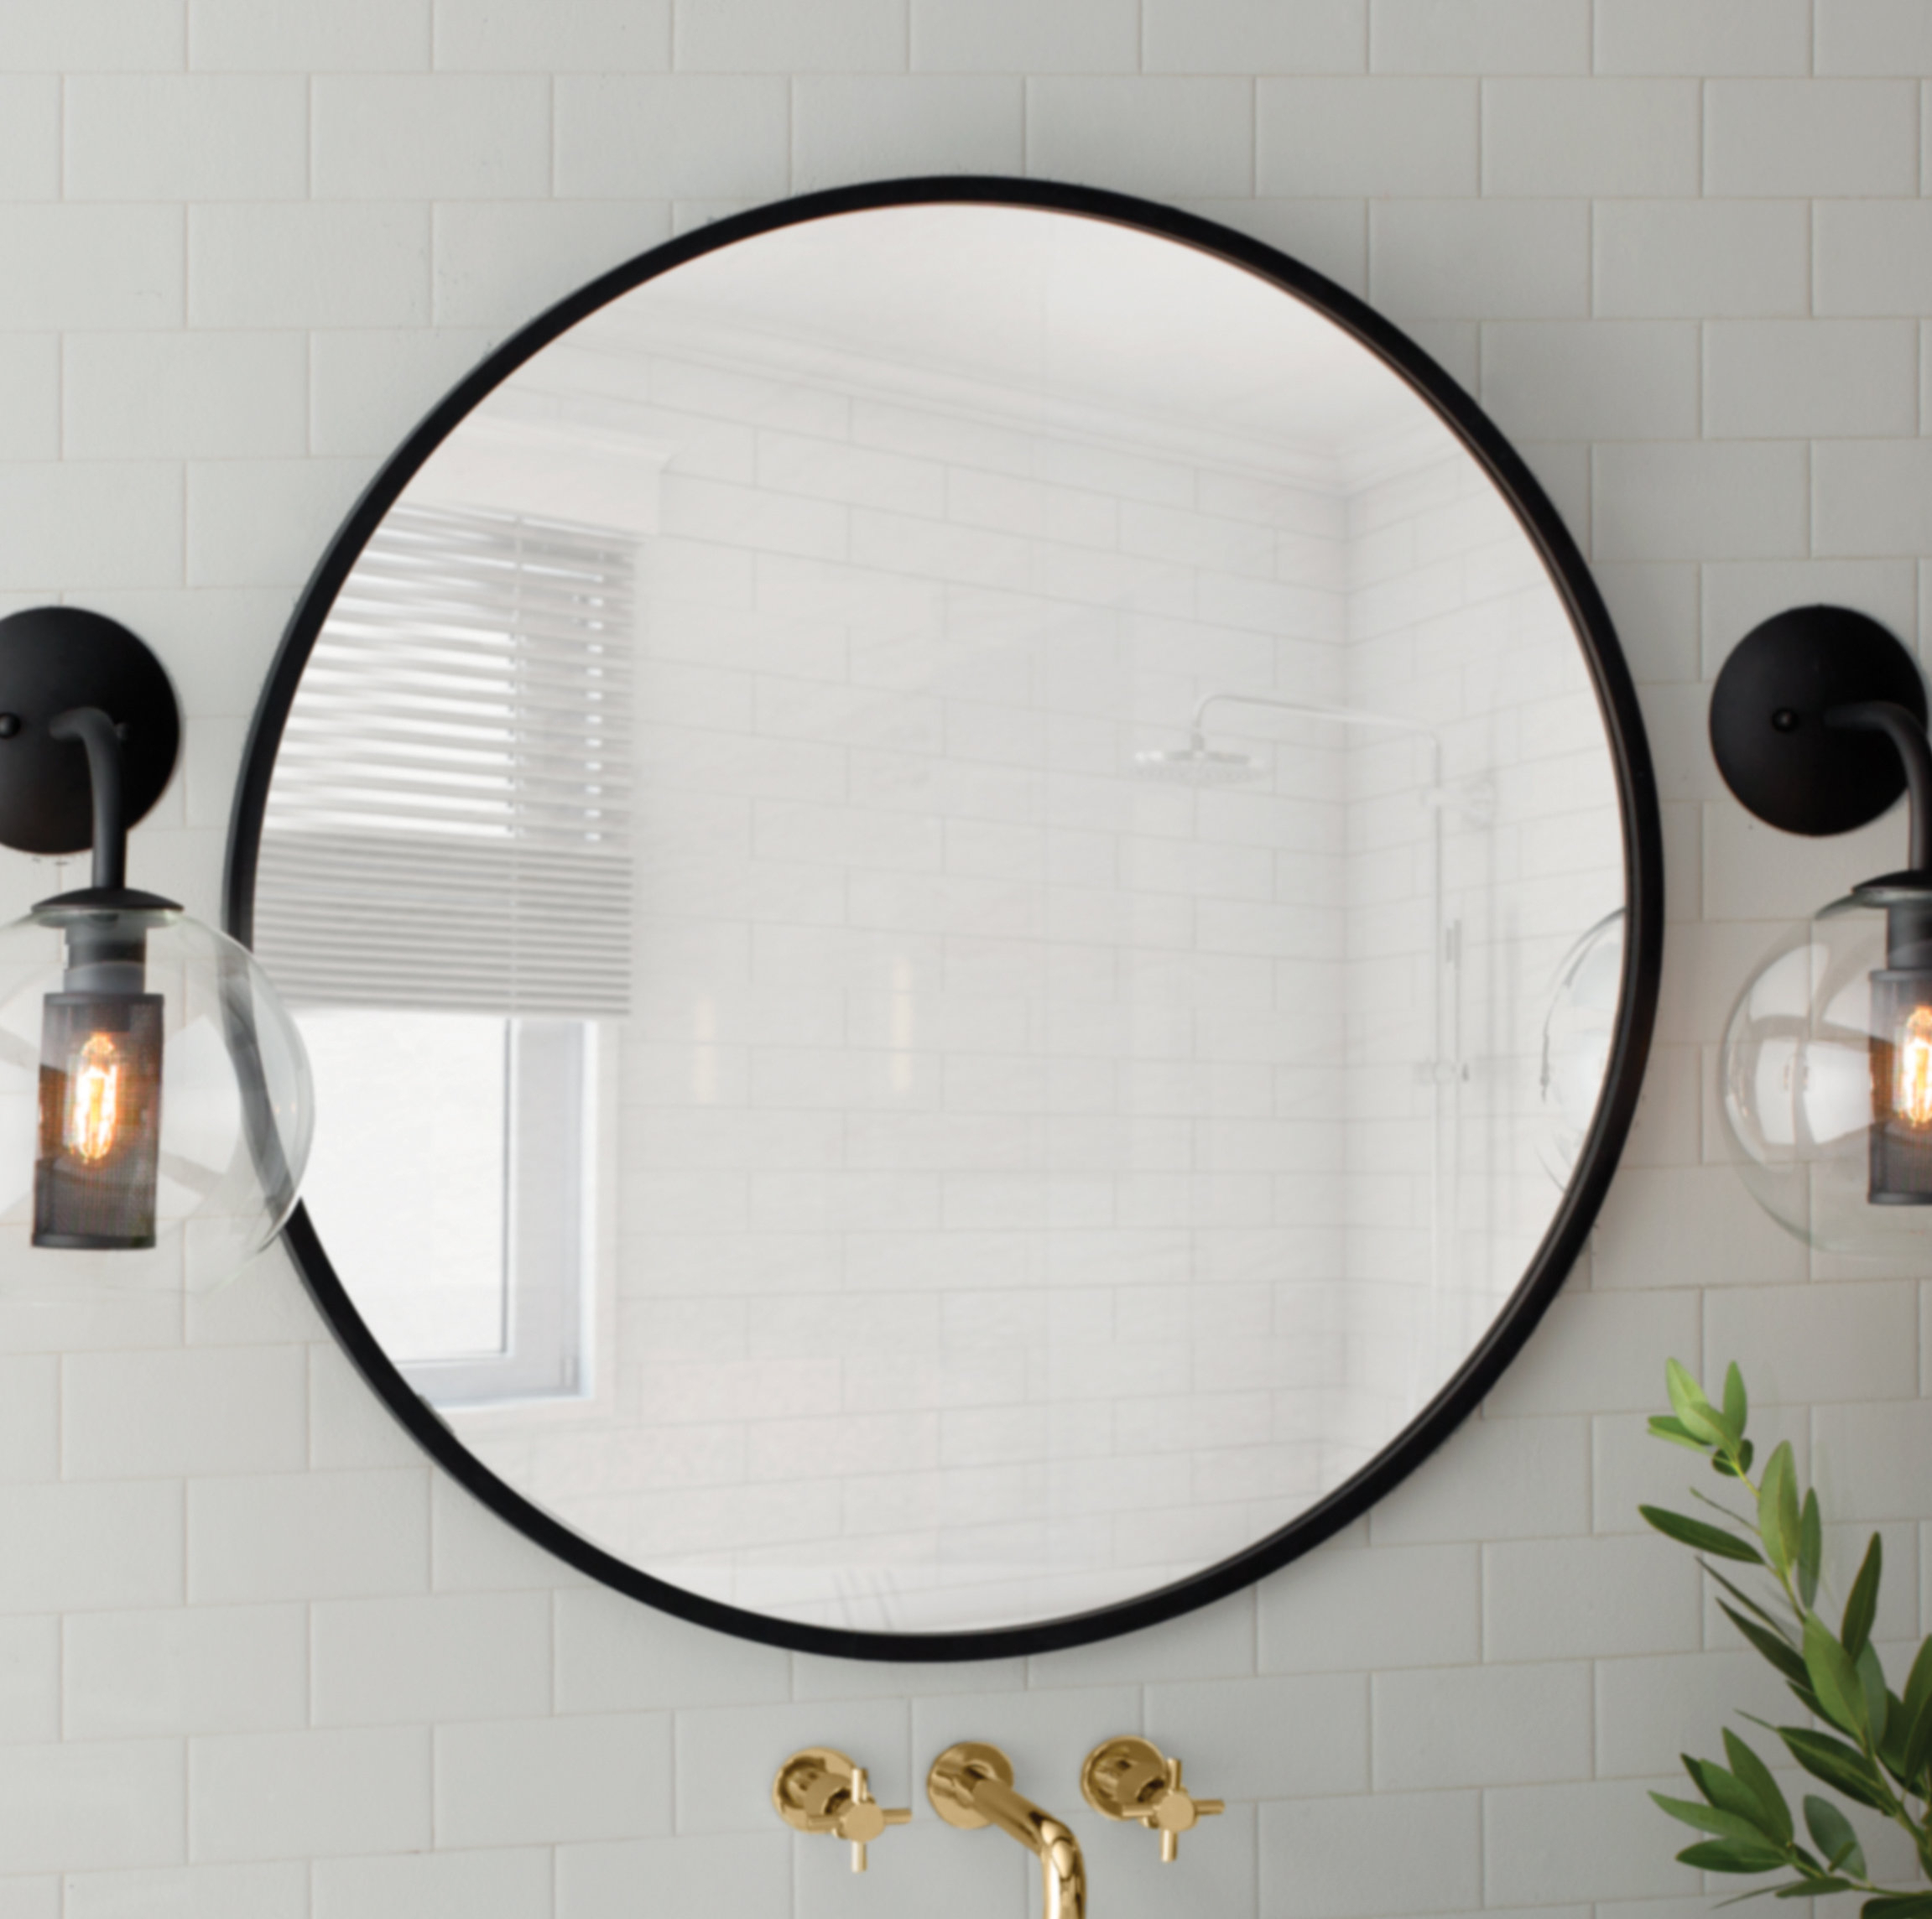 Hub Modern And Contemporary Accent Mirror regarding Yedinak Modern Distressed Accent Mirrors (Image 5 of 30)